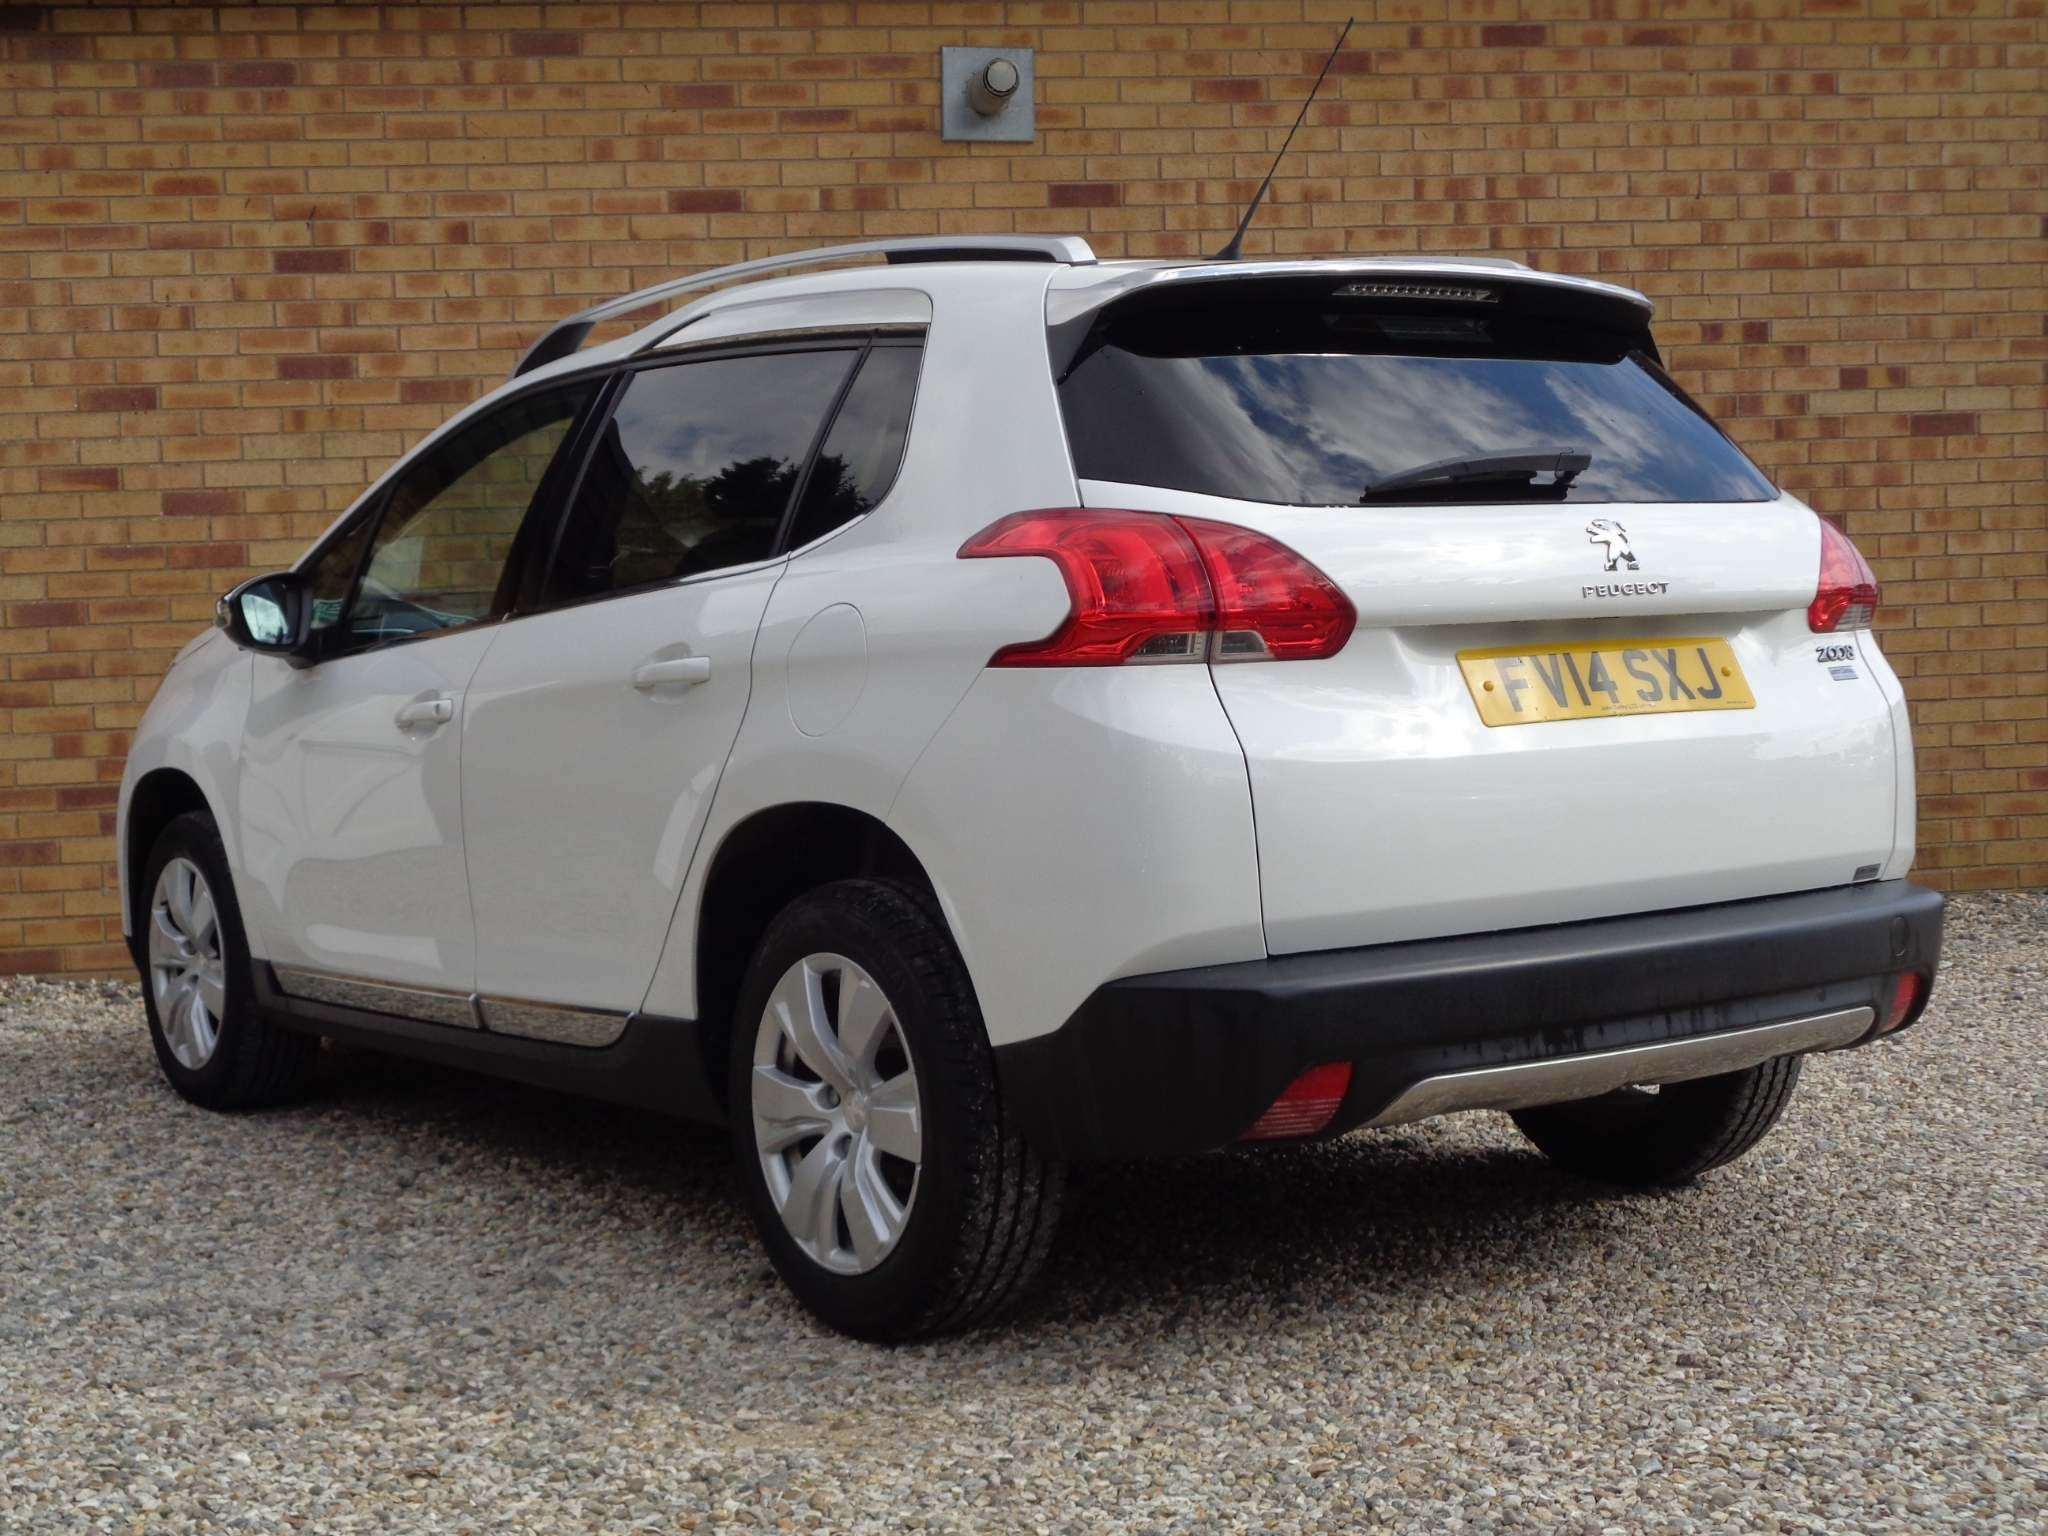 http://pictures2.autotrader.co.uk/imgser-uk/servlet/media?id=56c84e941c414176bc4aedb8f5b423ce